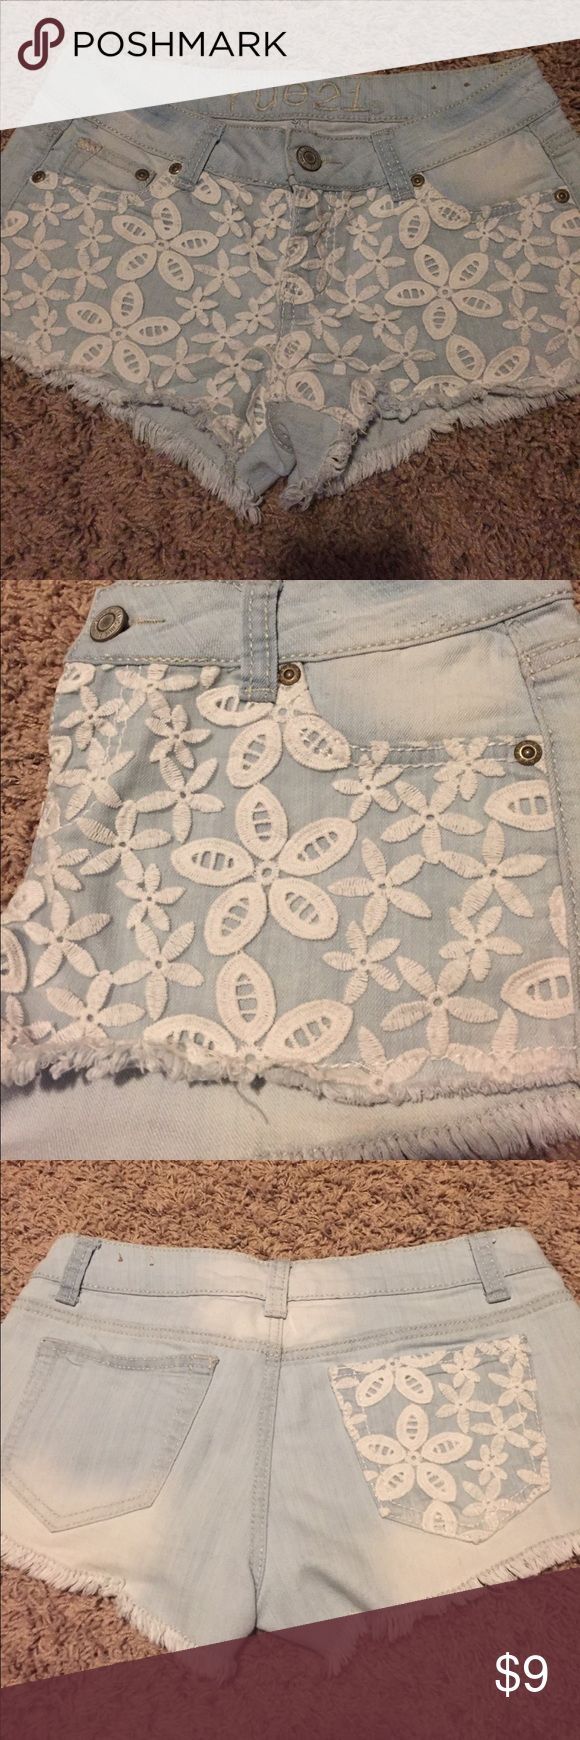 Lace pocket jean shorts Light wash denim short shorts with lace embroidered flower overlay across front and one back pocket. Fraying along bottom. Slight distressing along waist. See last pic. Size 3/4 Rue 21 Shorts Jean Shorts